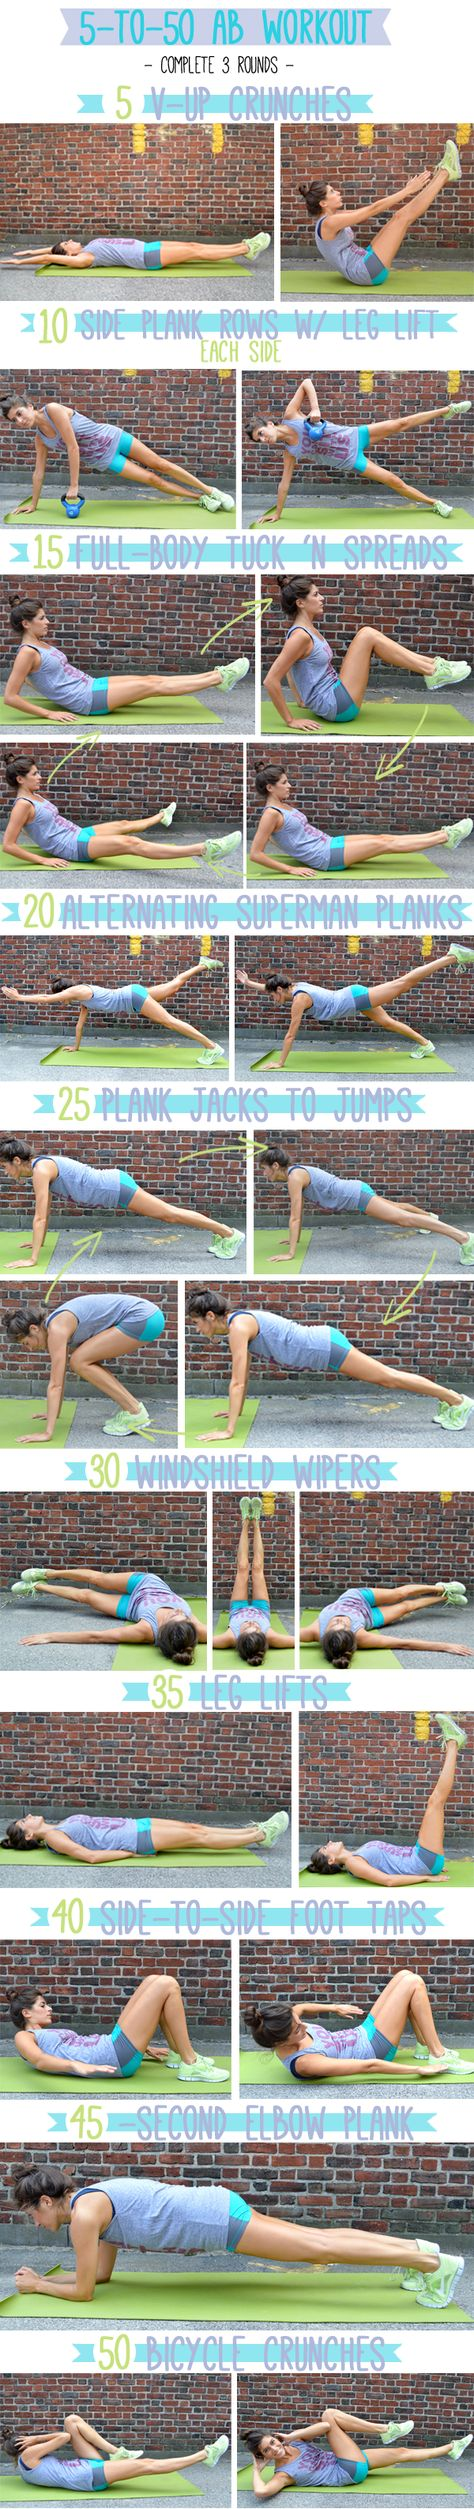 5 to 50 ab workout